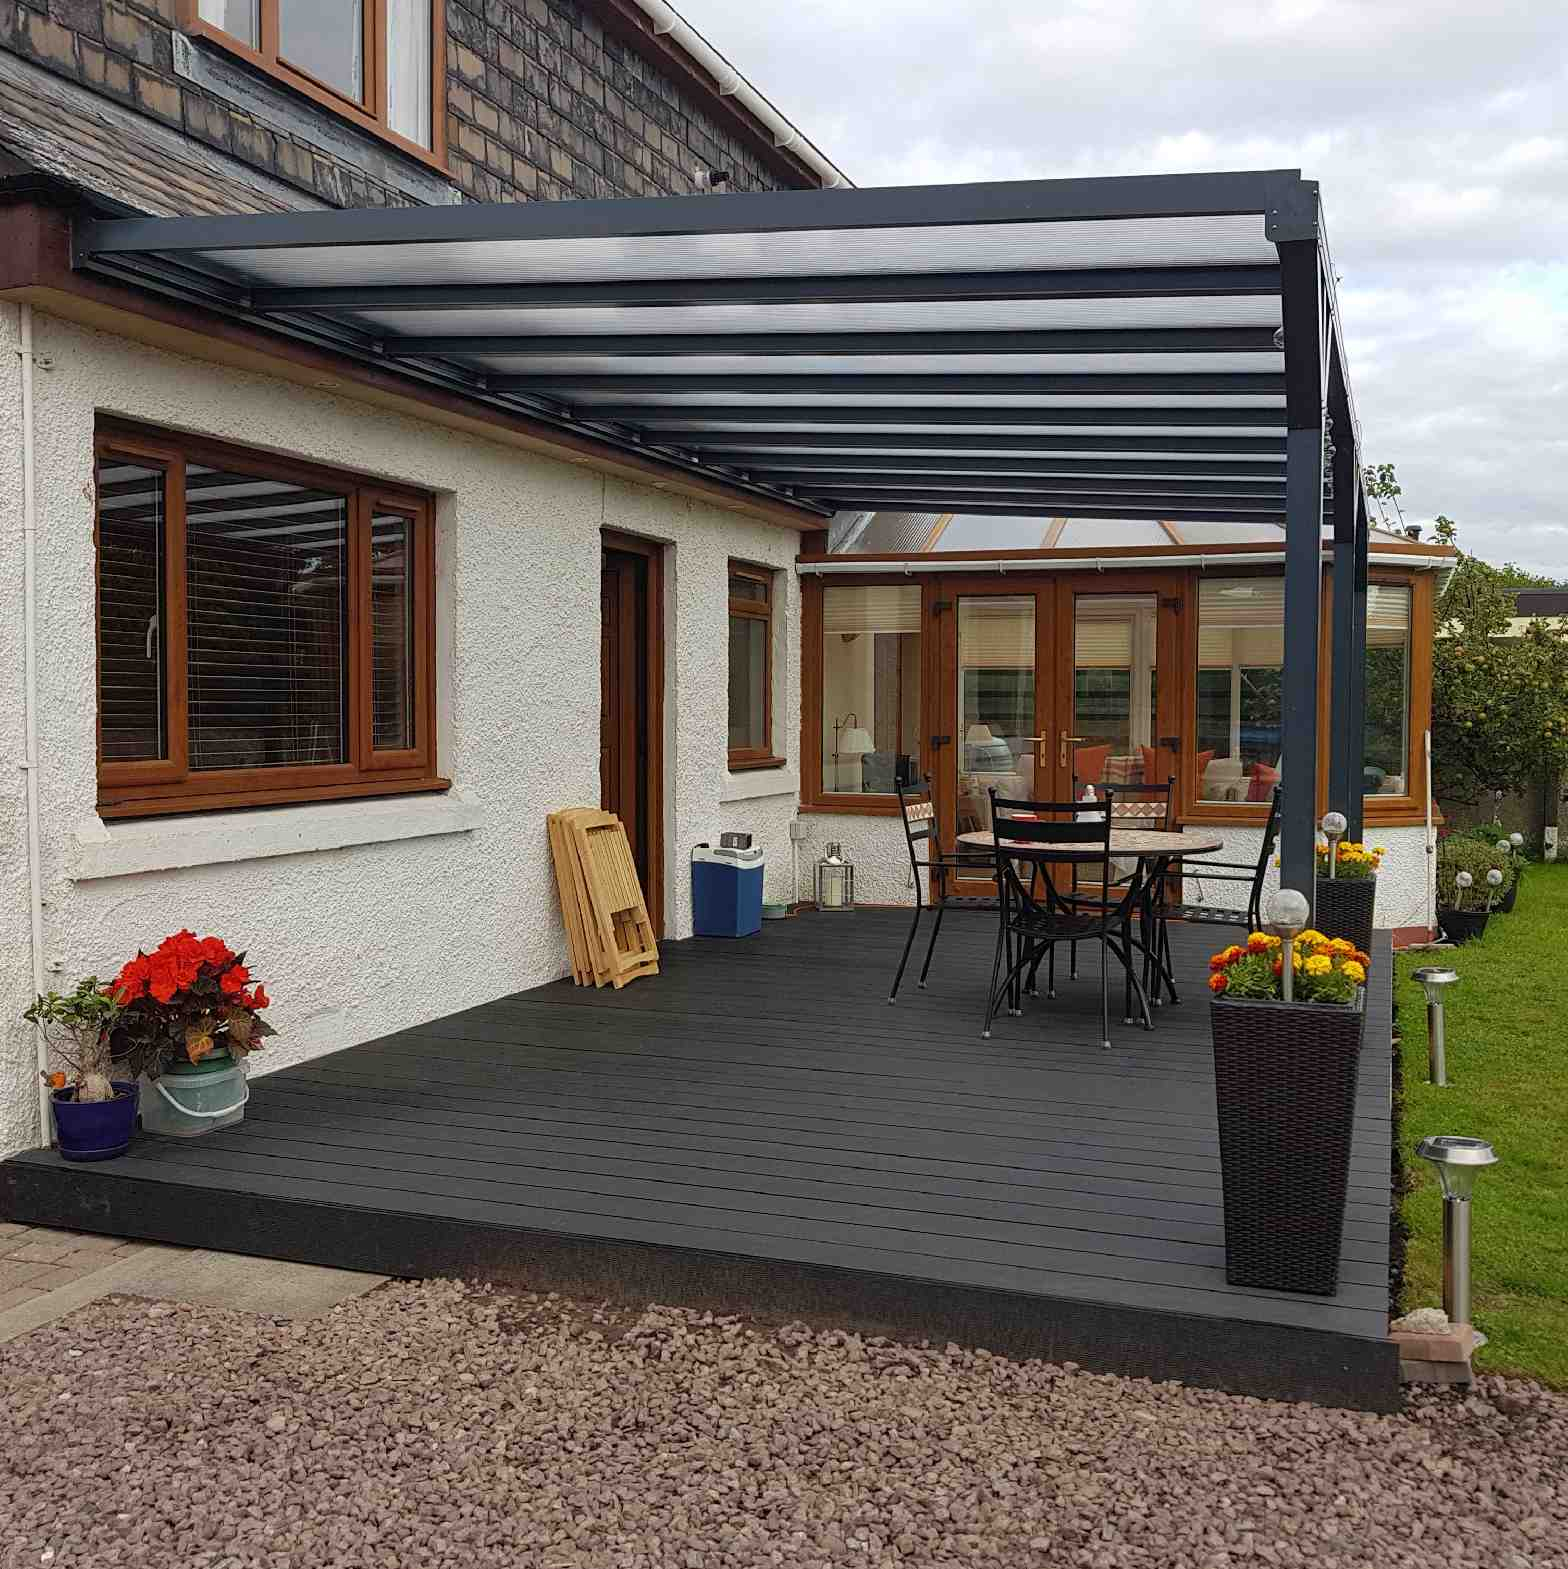 Buy Omega Verandah, Anthracite Grey, 16mm Polycarbonate Glazing - 6.0m (W) x 3.0m (P), (3) Supporting Posts online today